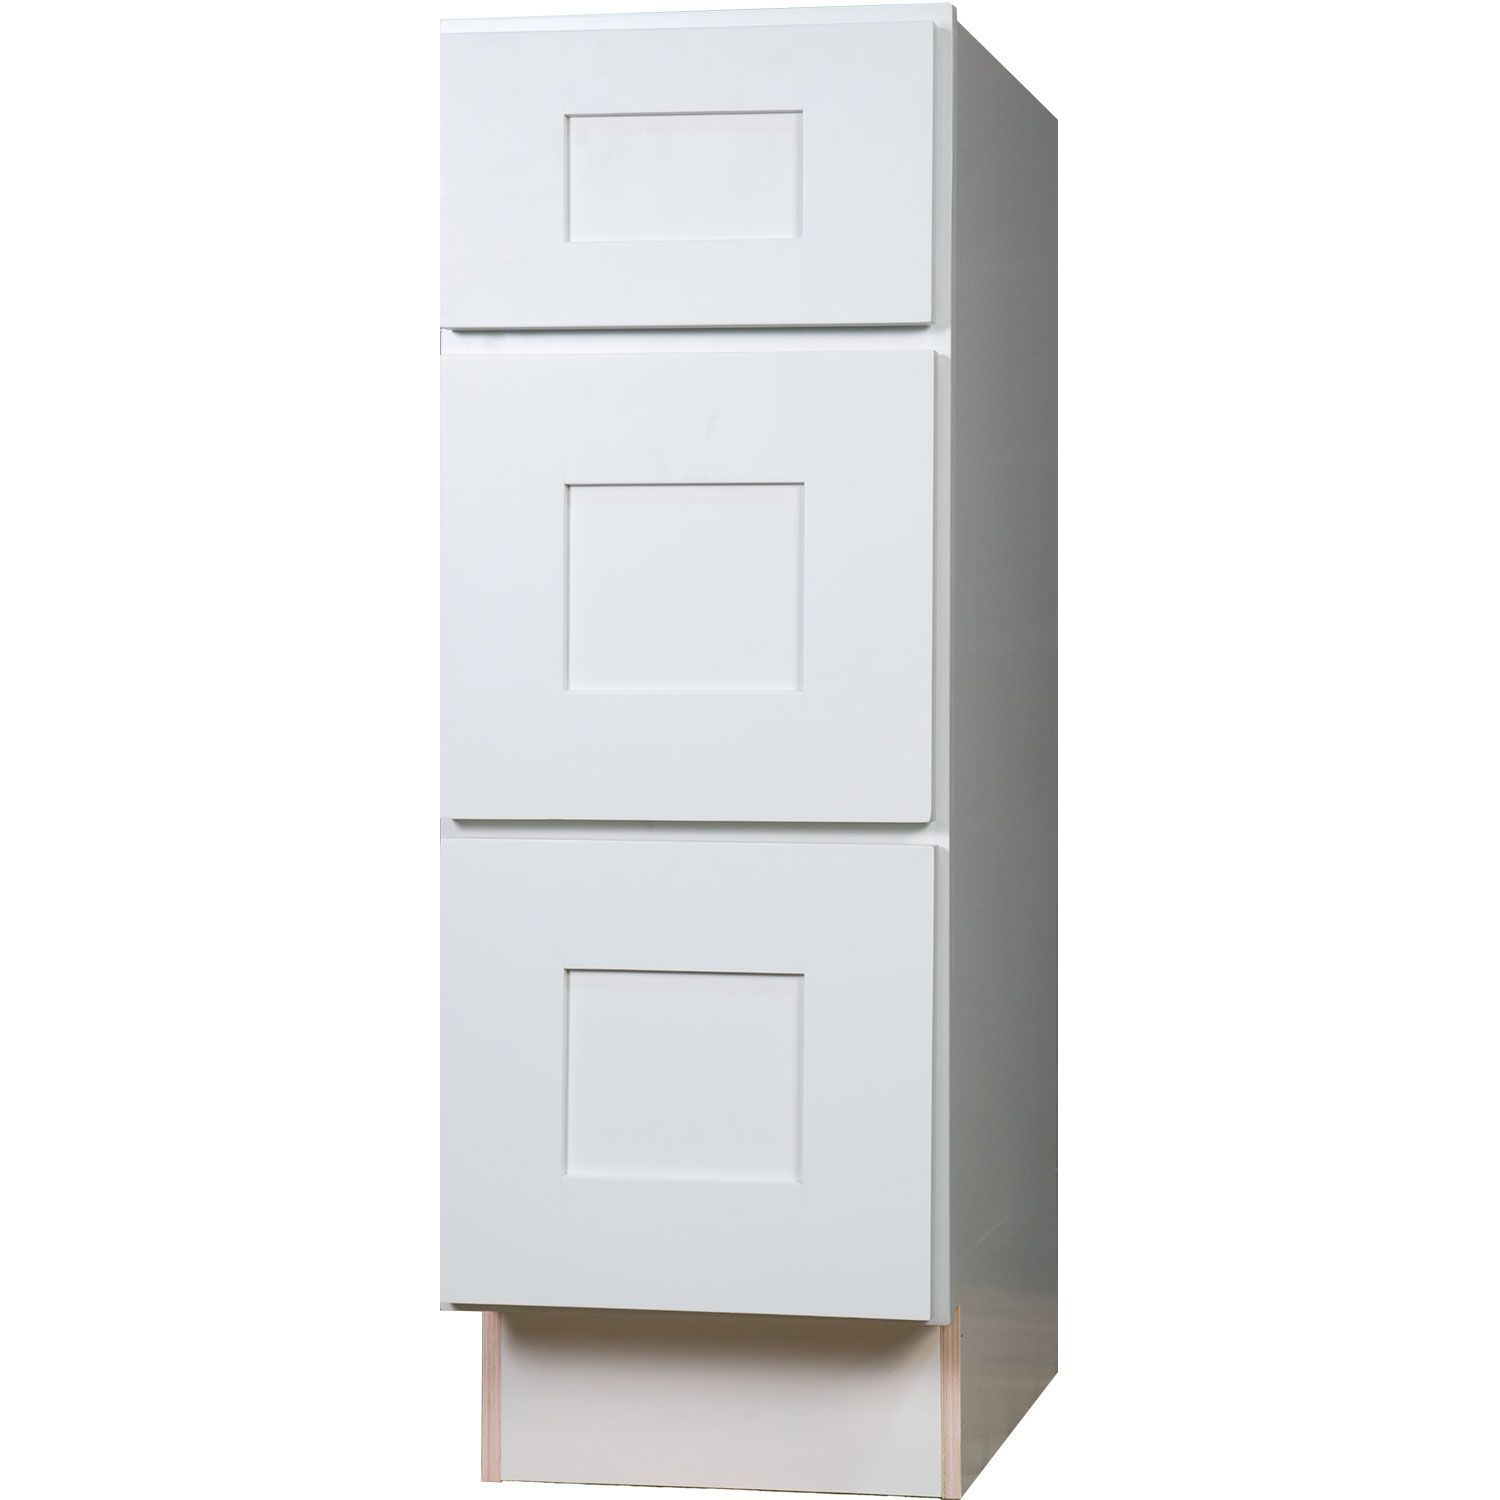 Bathroom Vanity Three Drawer Base Cabinet In Shaker White With Soft Close Drawers Bathroom Vanity Drawers Kitchen Base Cabinets Vanity Drawers